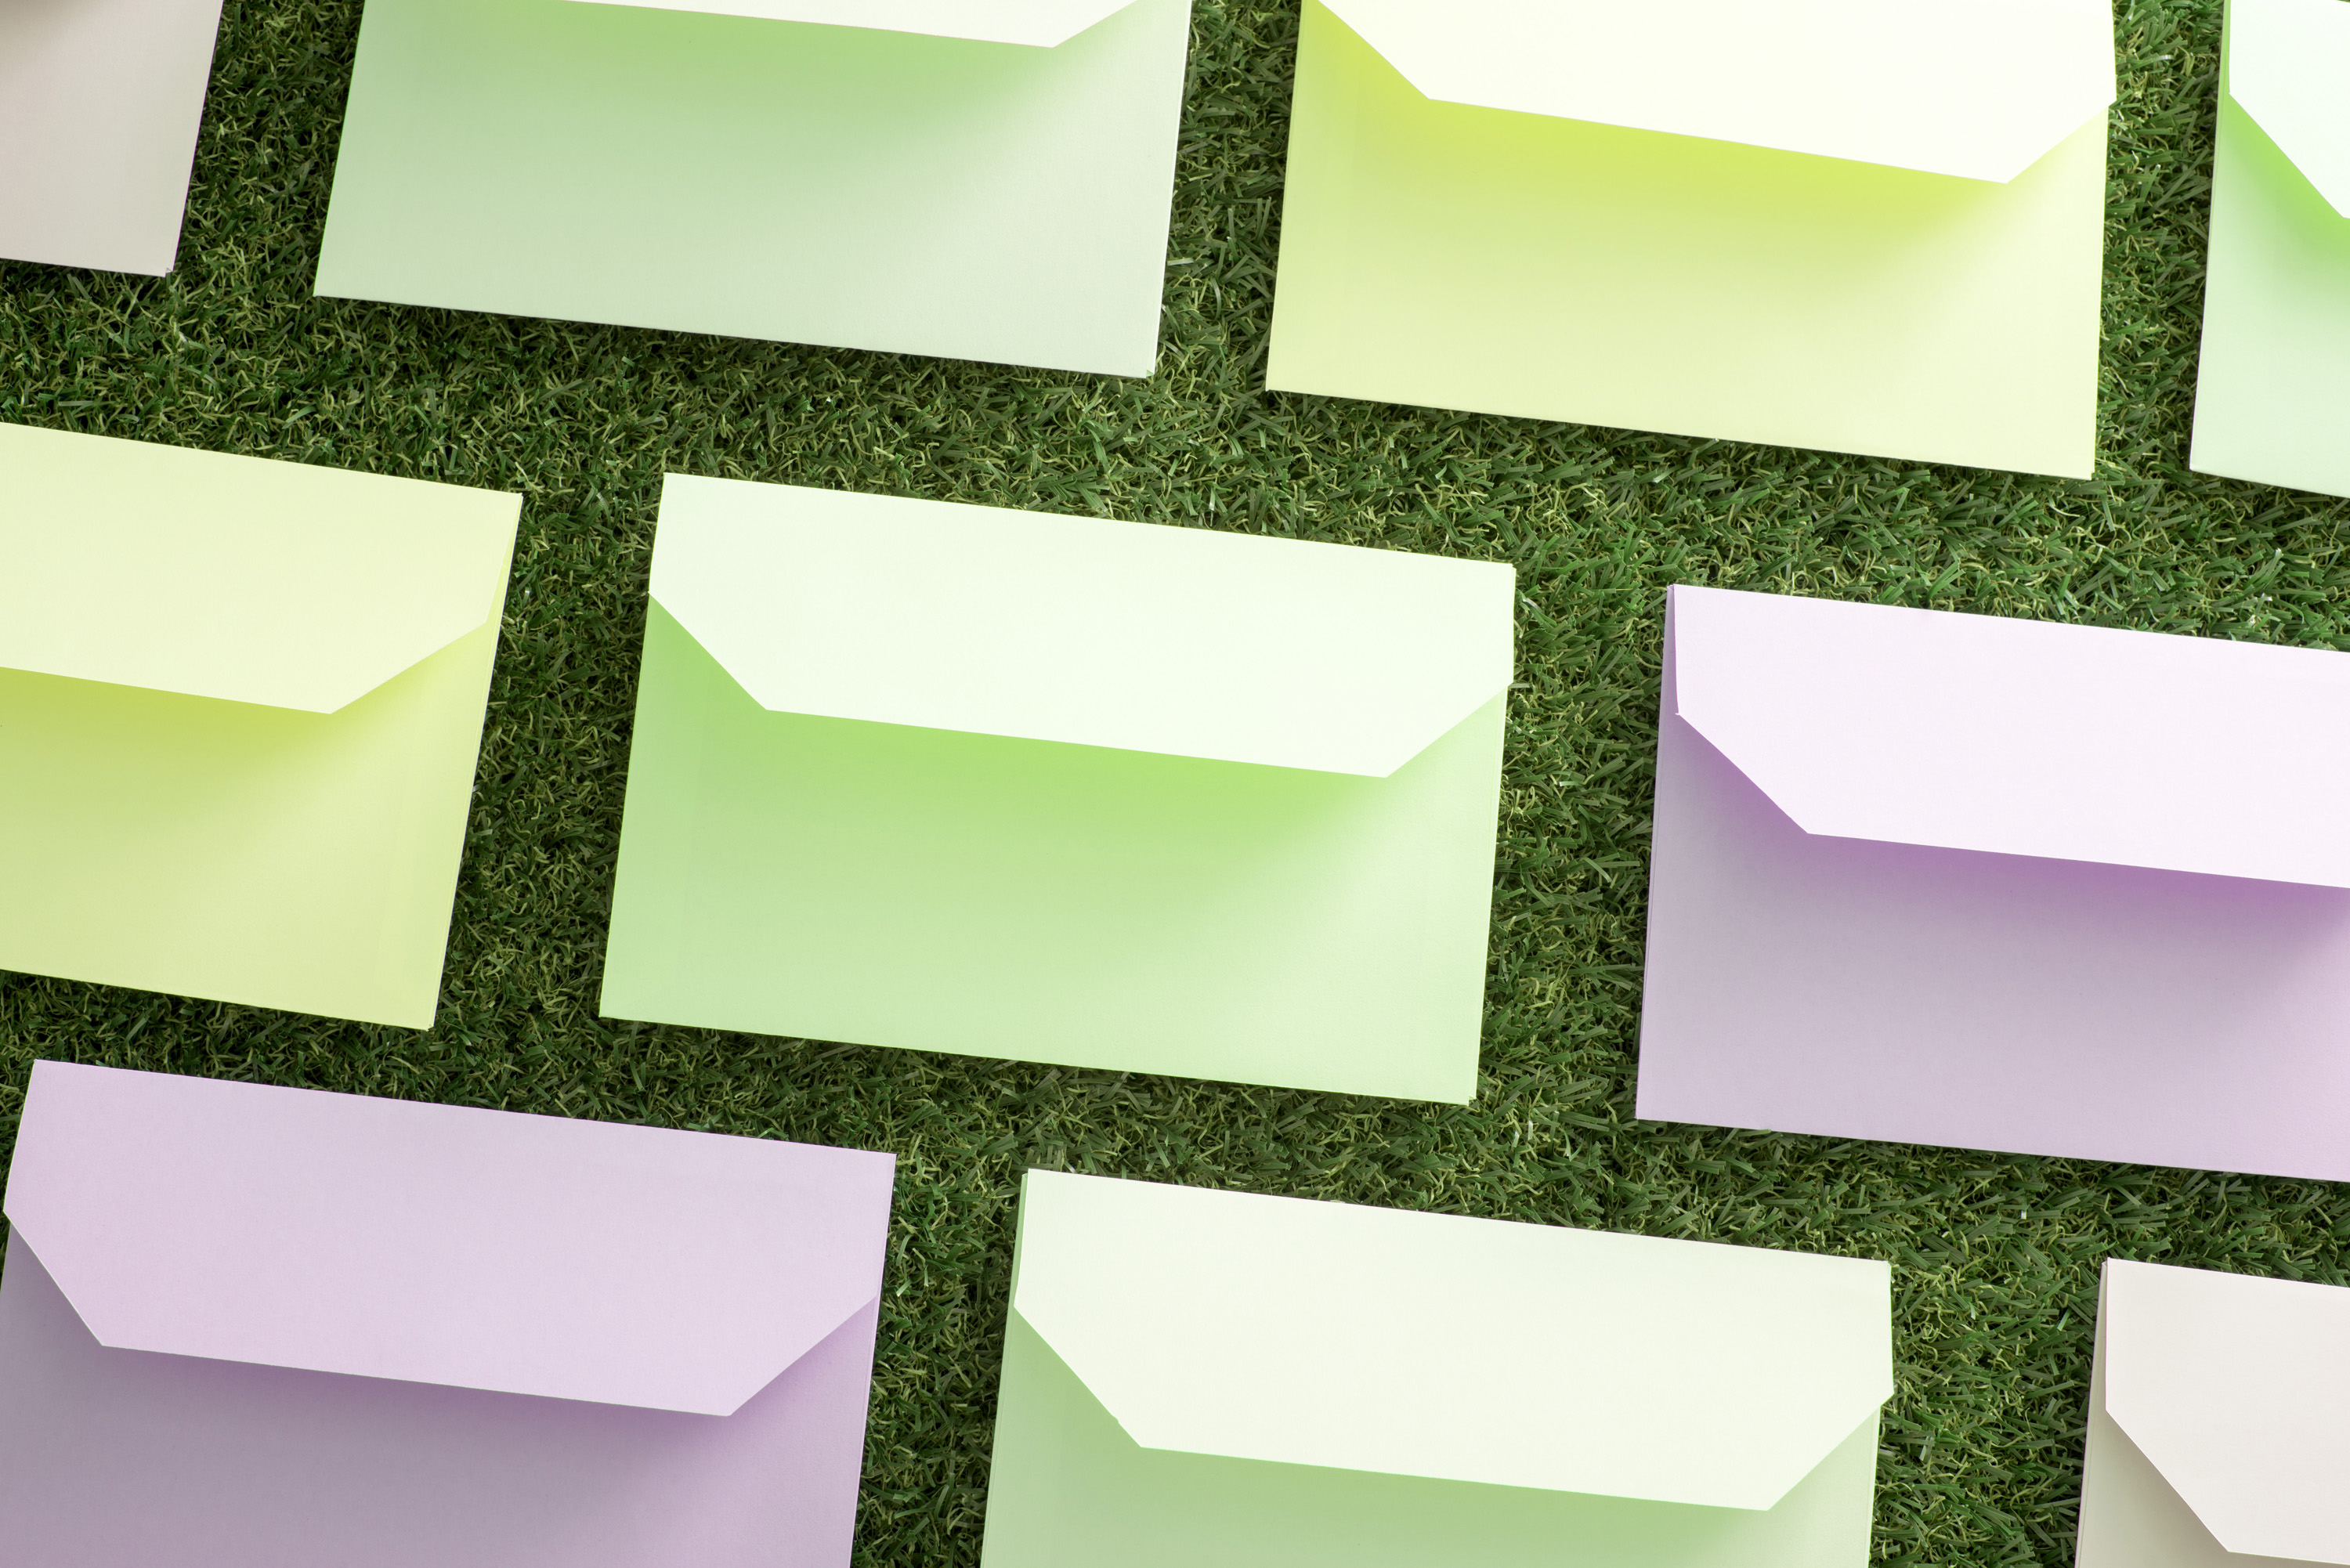 easter_spring_greeting.jpg - Rows of pastel colored envelopes neatly arranged on green grass viewed from above in a communications or correspondence concept